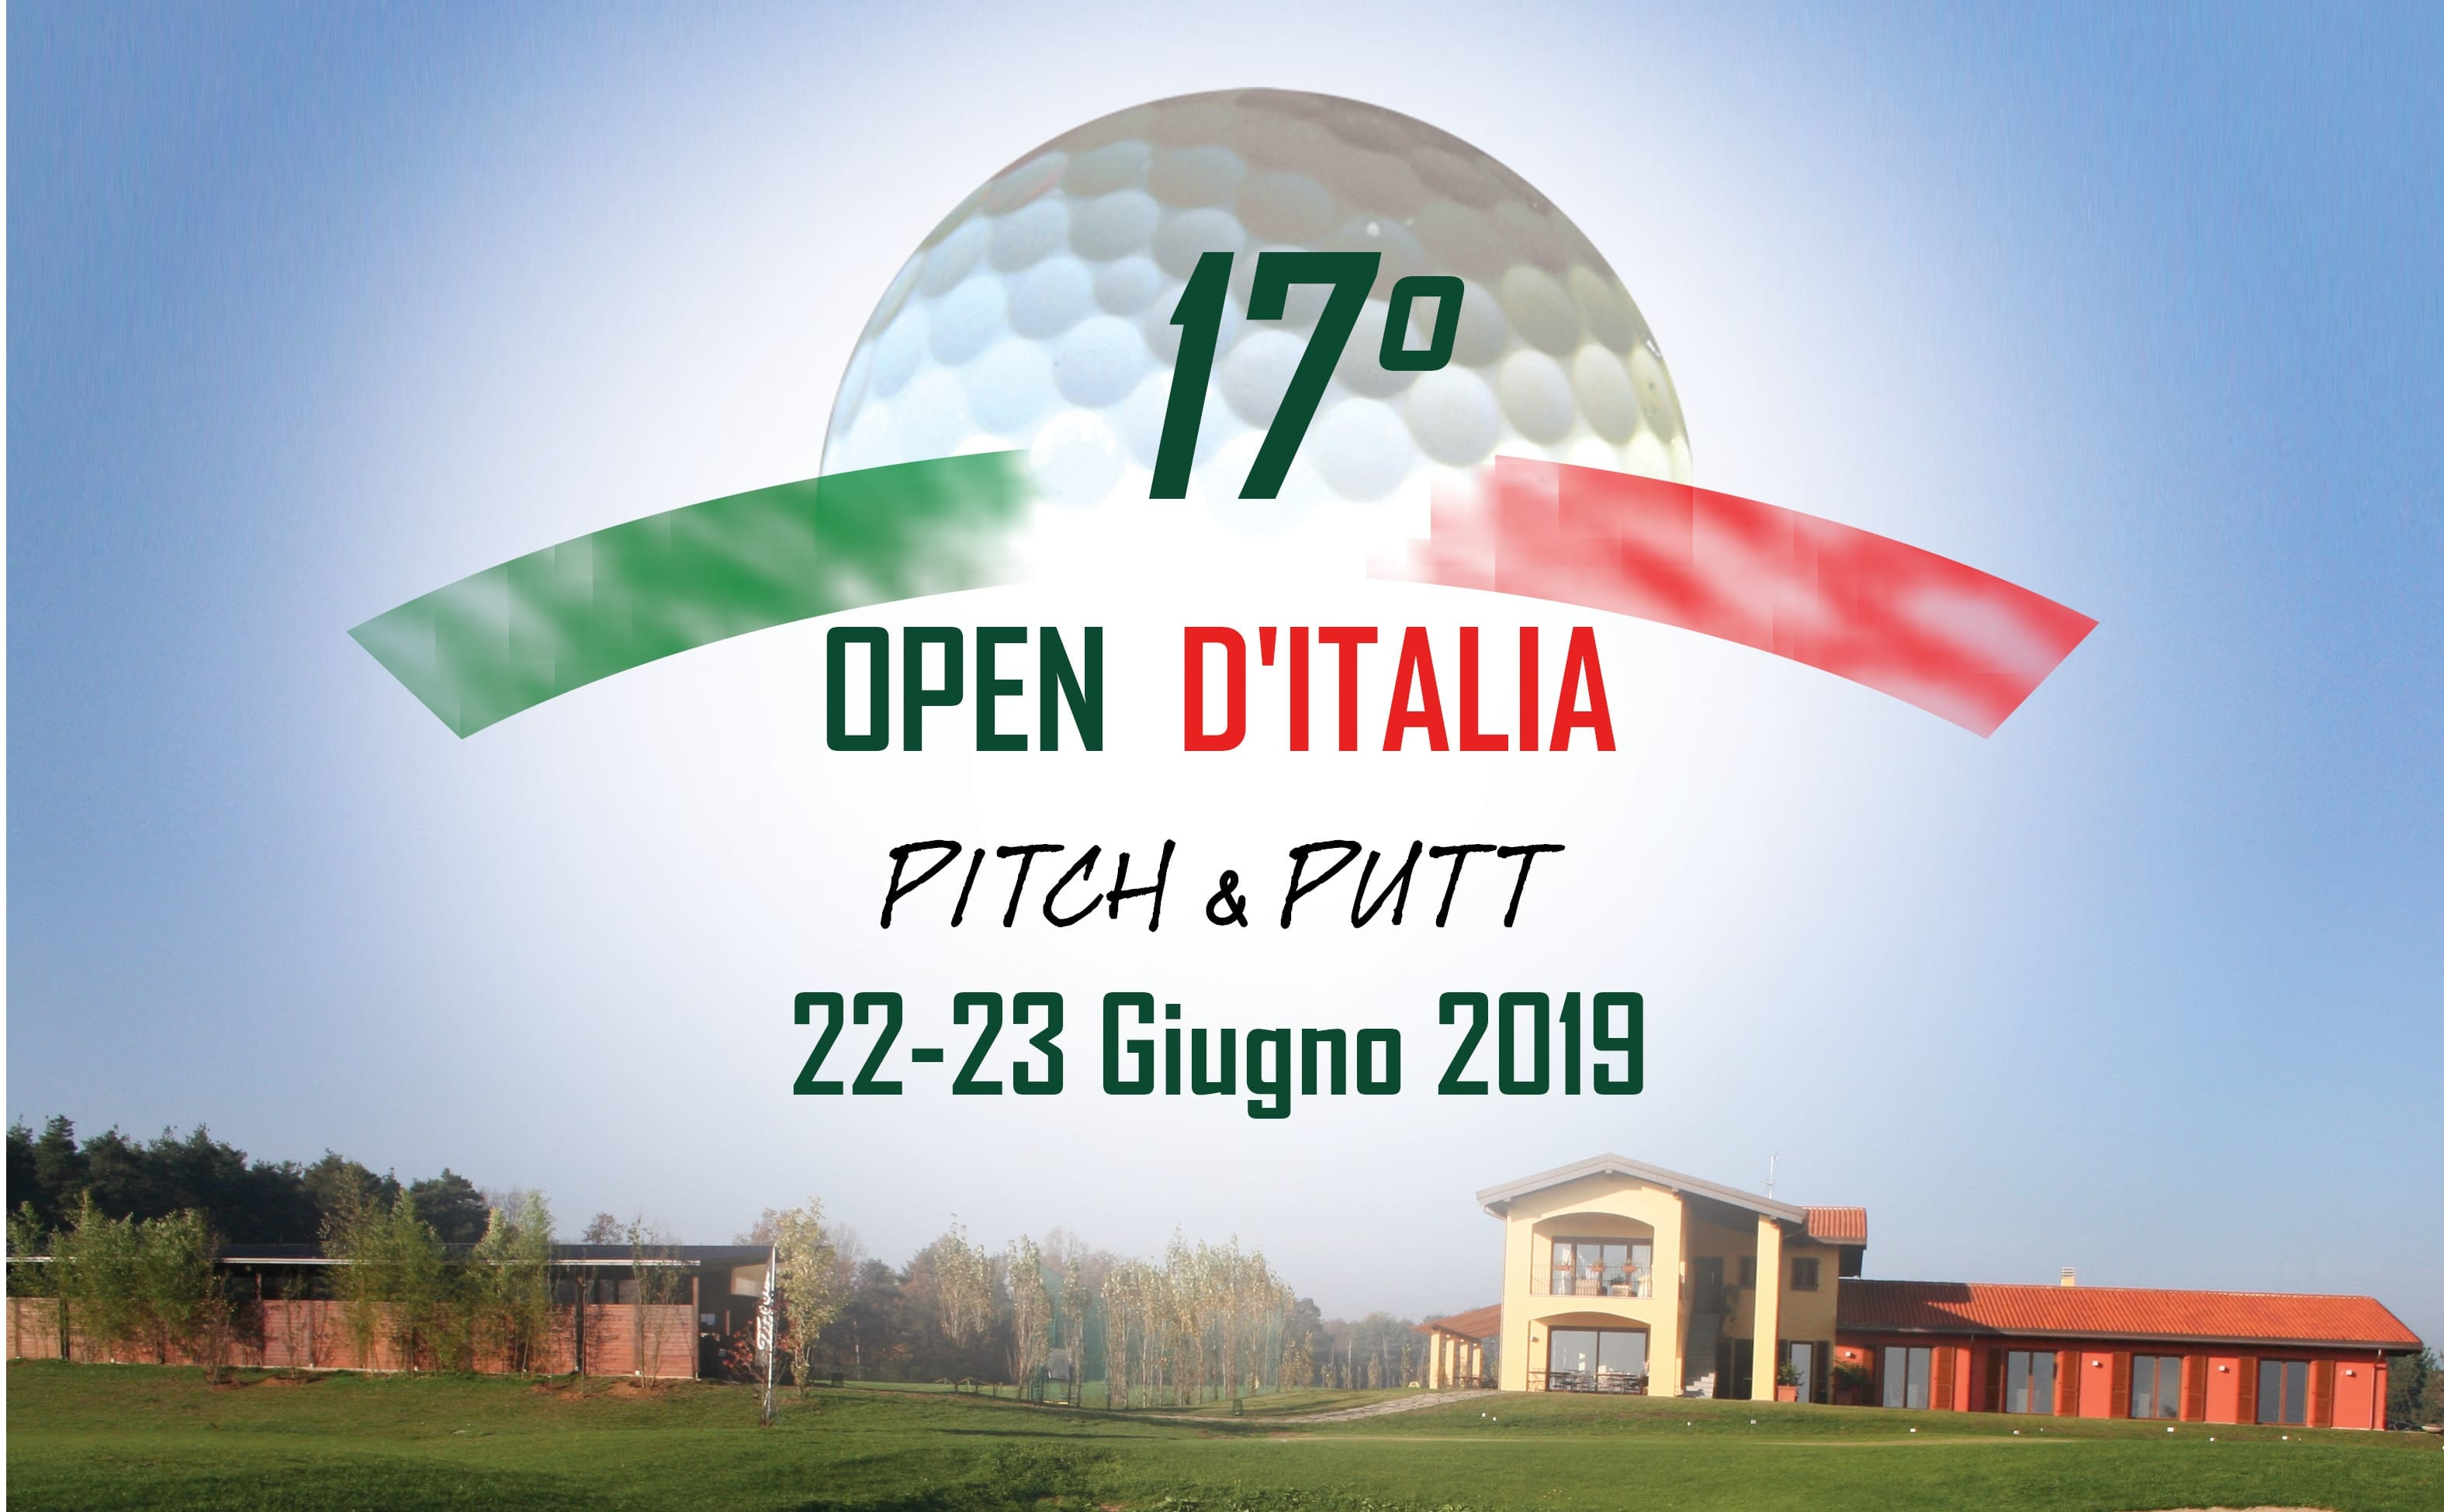 17th OPEN D' ITALIA P&P will be at Virginia Golf – Appiano Gentile